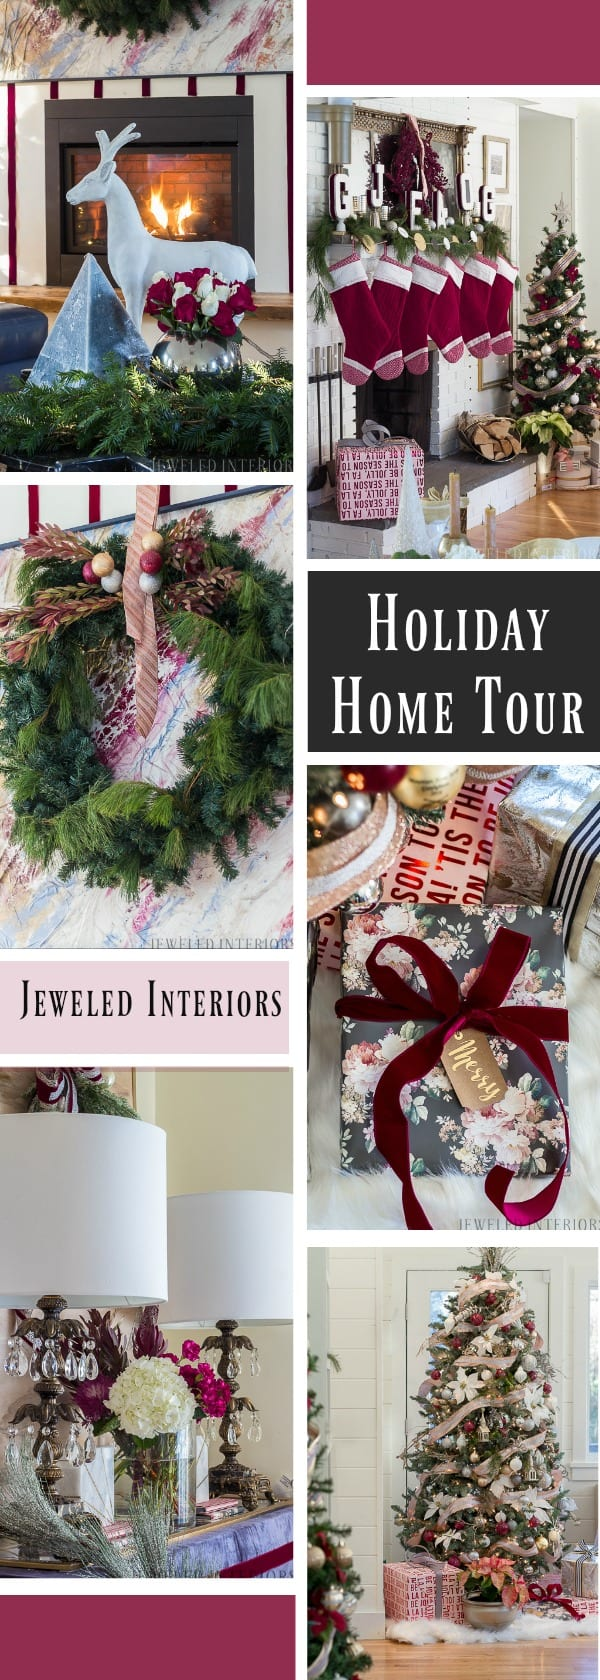 Looking for inspiration for Christmas decor? You have got to see this! Jeweled Interiors Holiday Home Tour 2017 | Burgundy Blush Christmas Decor Ideas and Tips ⋆ Jeweled interiors, wreaths, Christmas, holiday, tree, decor, decorations, built-ins, coffee table, ideas, DIY, inspiration, burgundy, blush, red, maroon, wine, home, living room, pointsettieas, glam, chic, peach, gold, black, white, ornaments, dalmation print, ribbon, roses, velvet, DIY, art